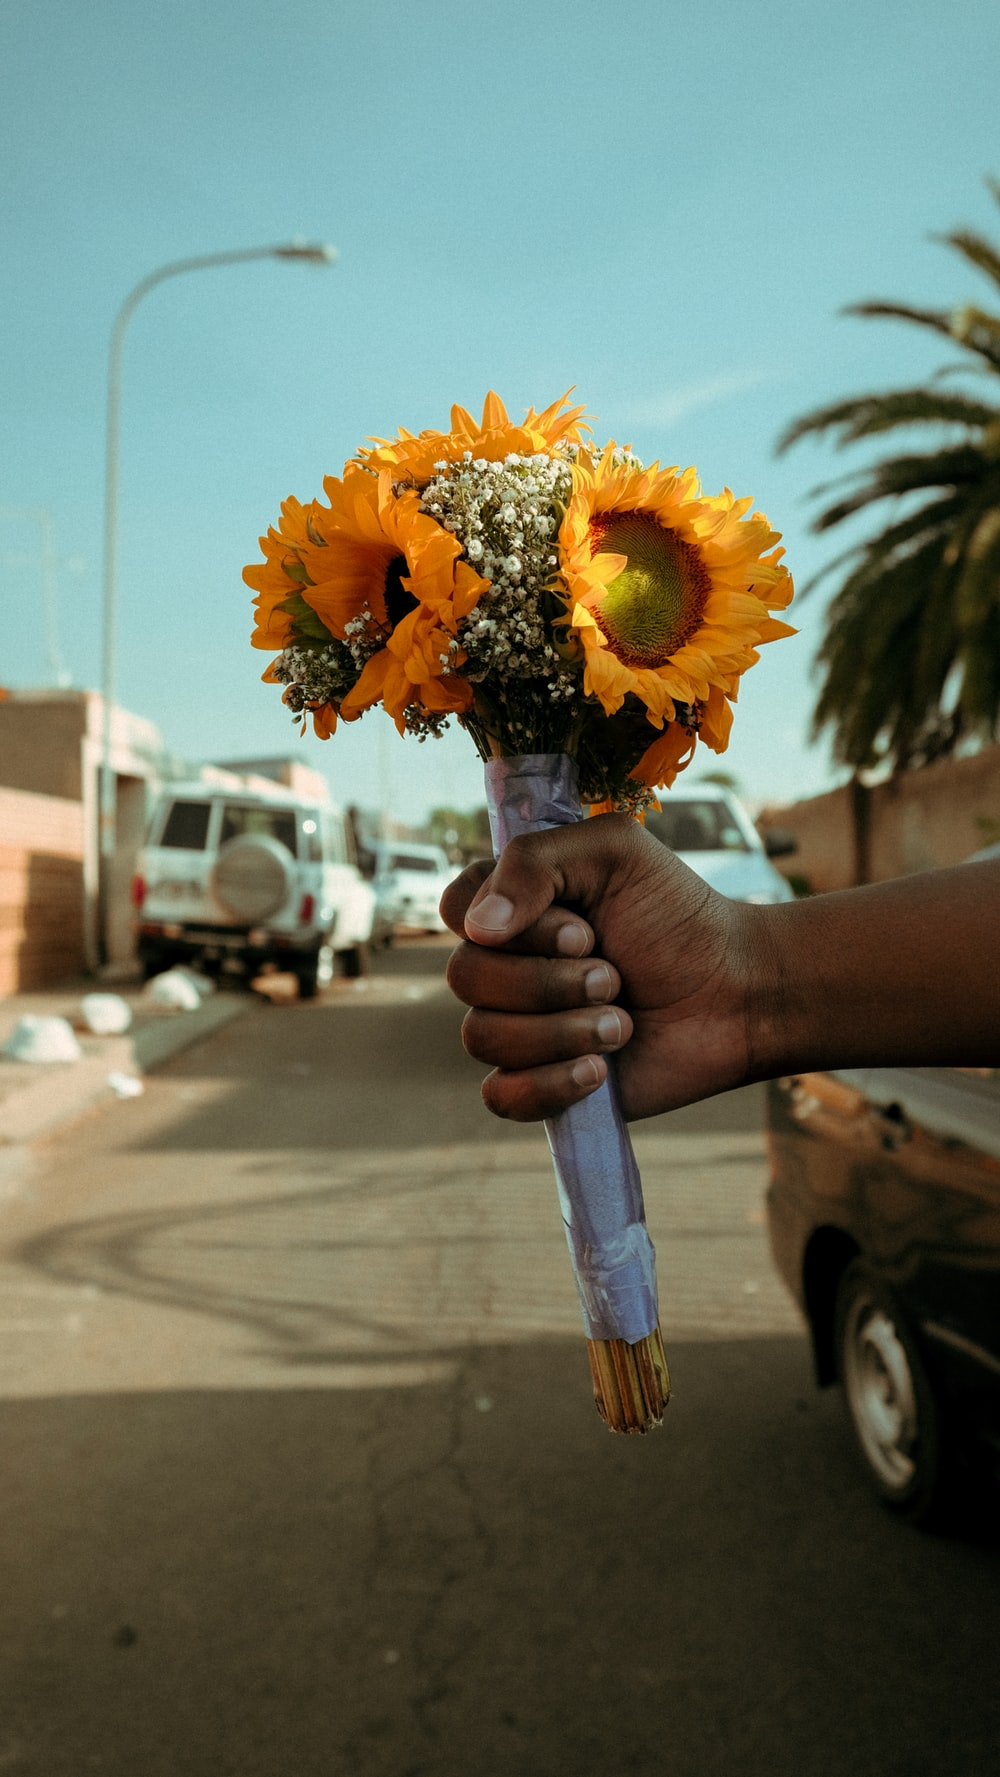 person hand holding sunflower bouquet